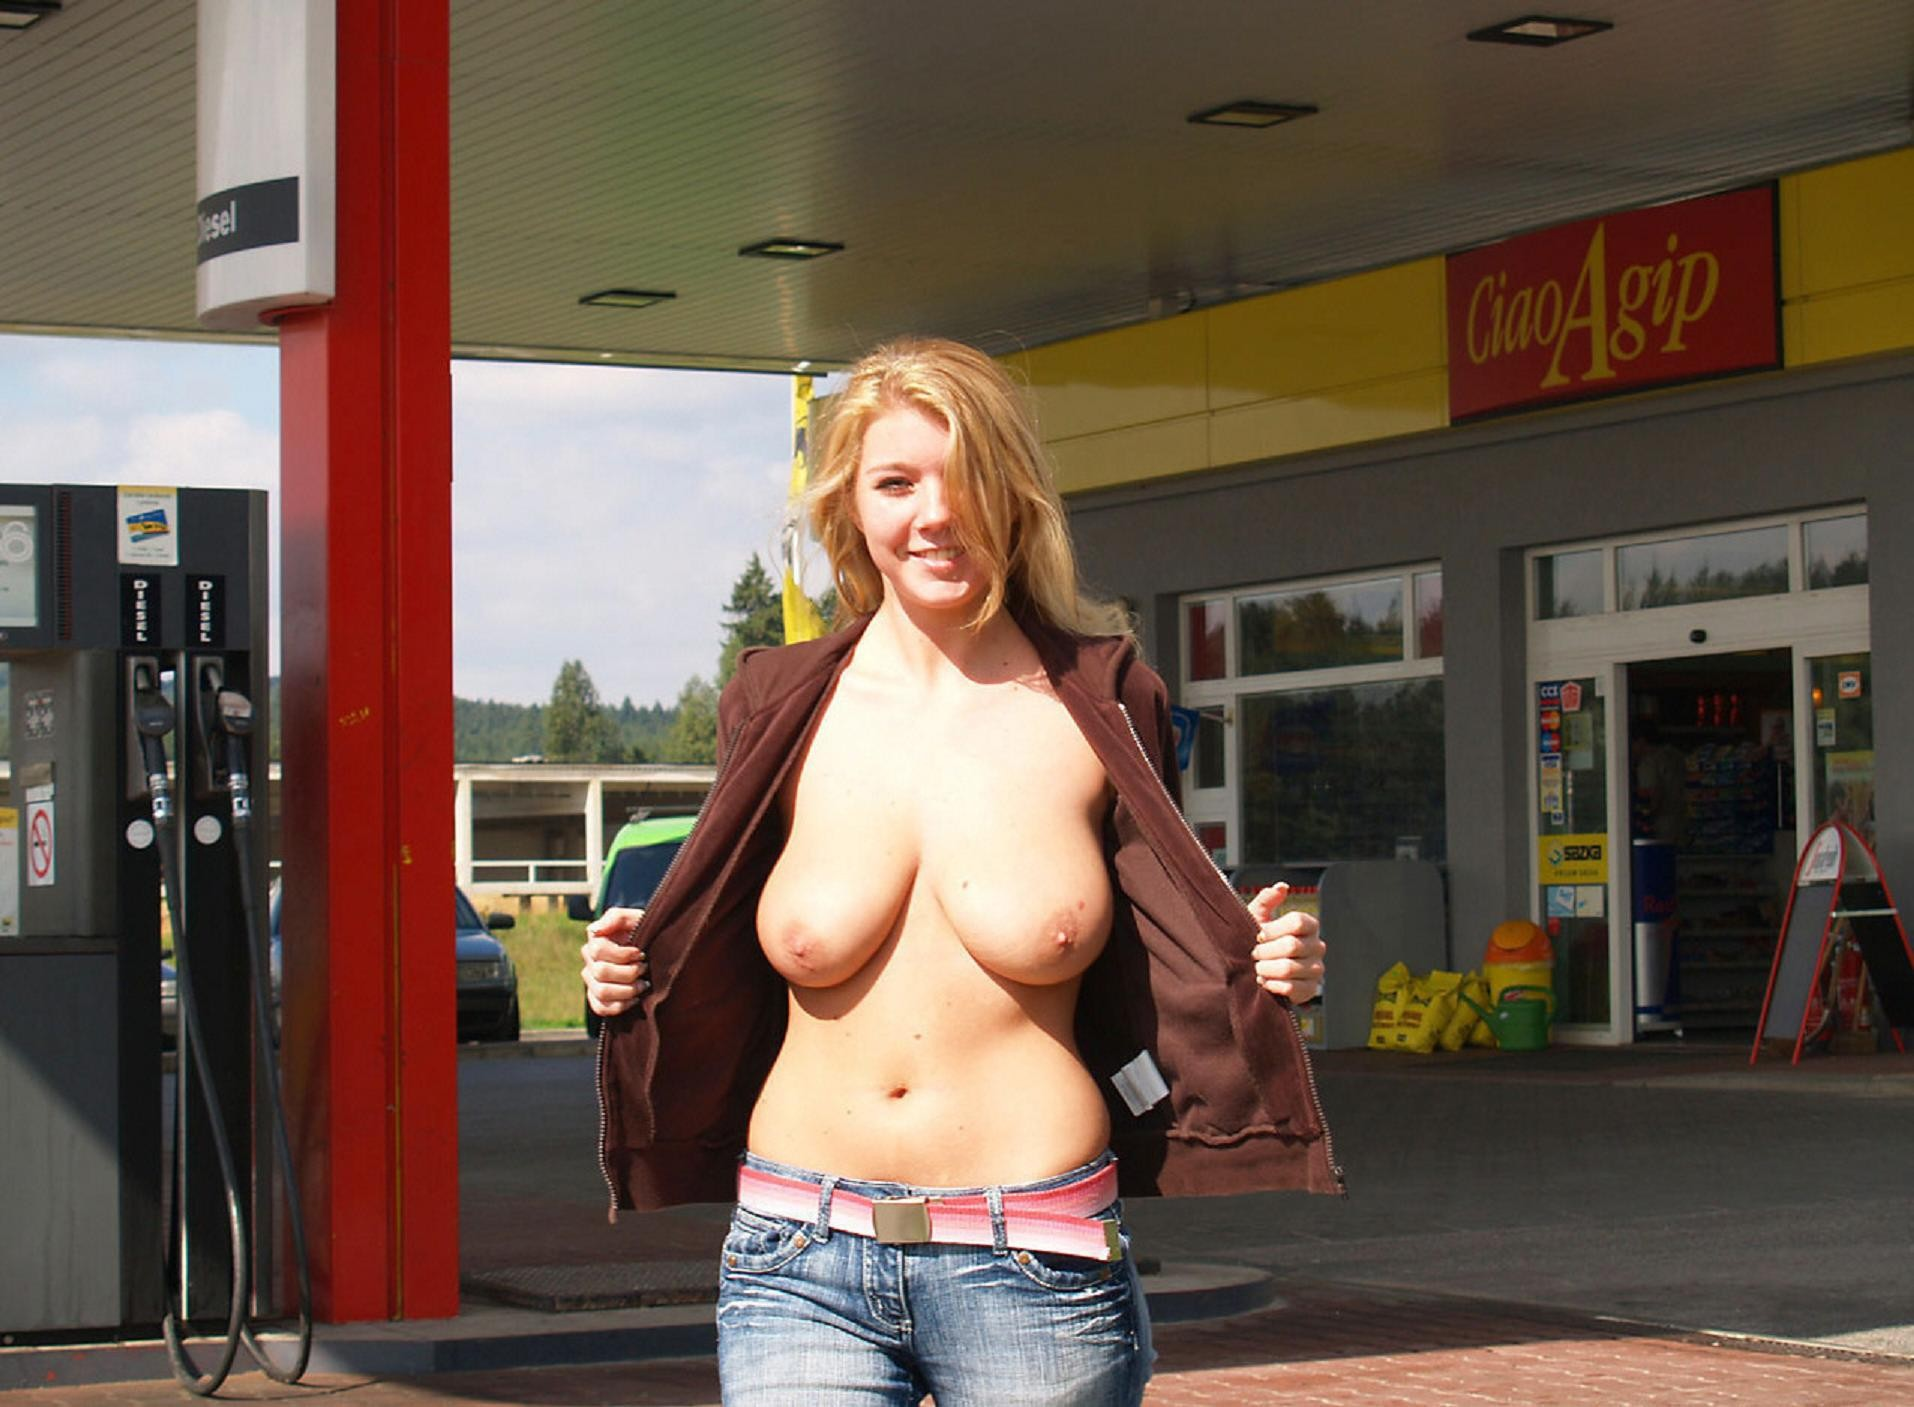 Hot Blonde Flashing Public